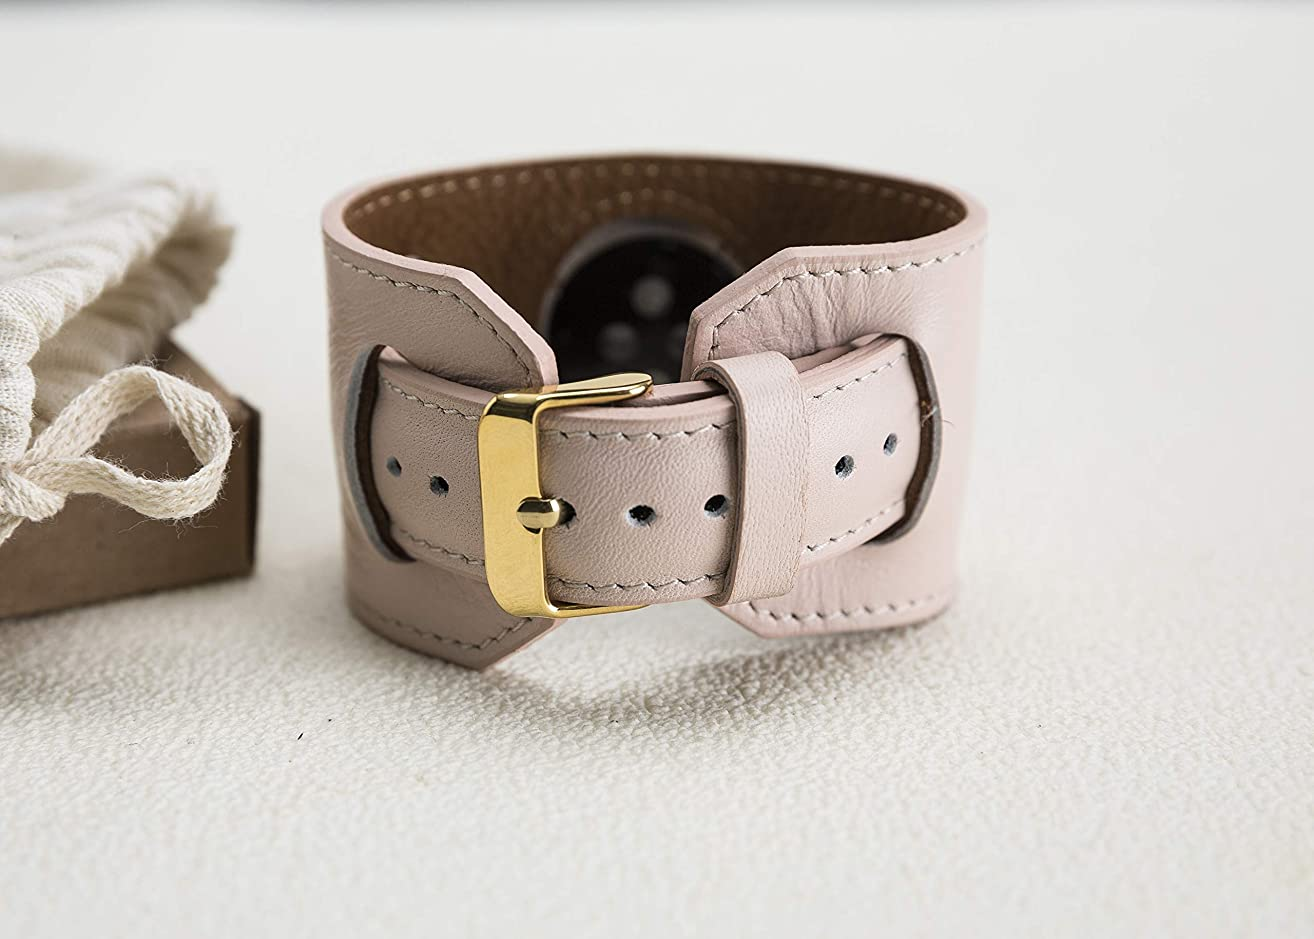 Cuff Apple watch band series 1&2&3&4, apple watch band 44mm, apple watch band, leather apple watch 38mm, GIFT FOR SPECIAL DAY.